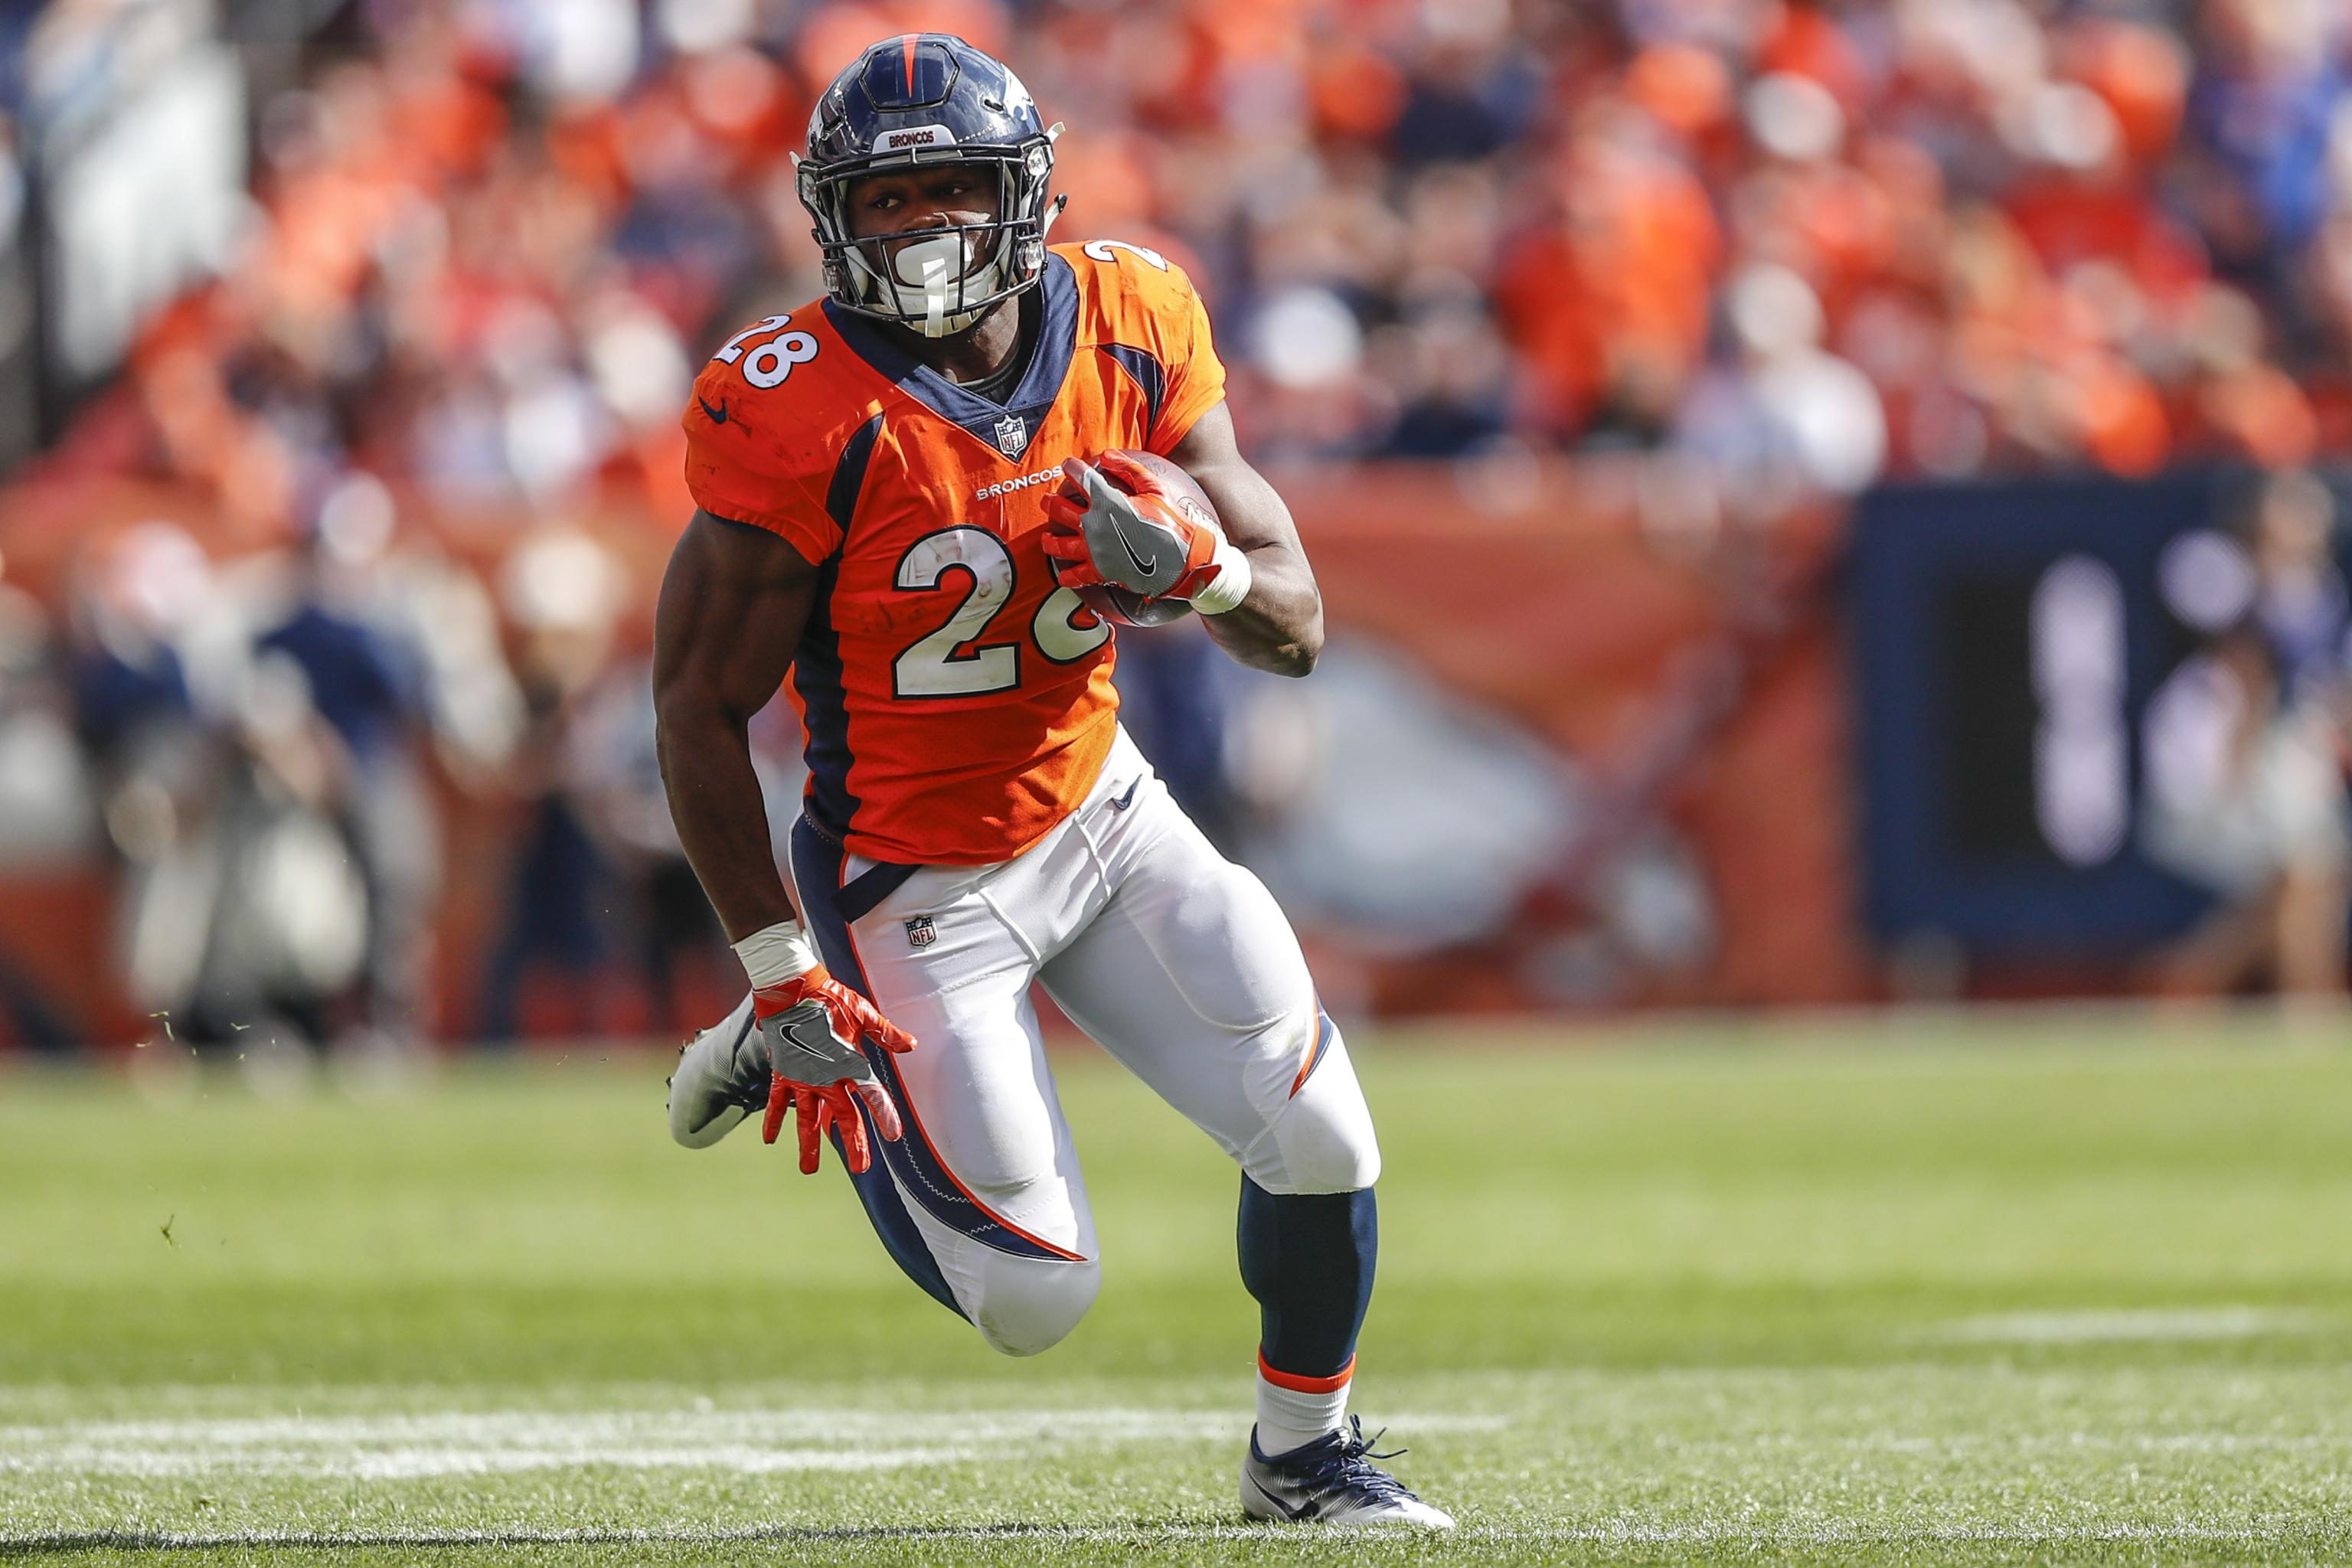 outlet store ac090 23f4d Schefter: Royce Freeman 'Could Miss Some Time' with Sprained ...